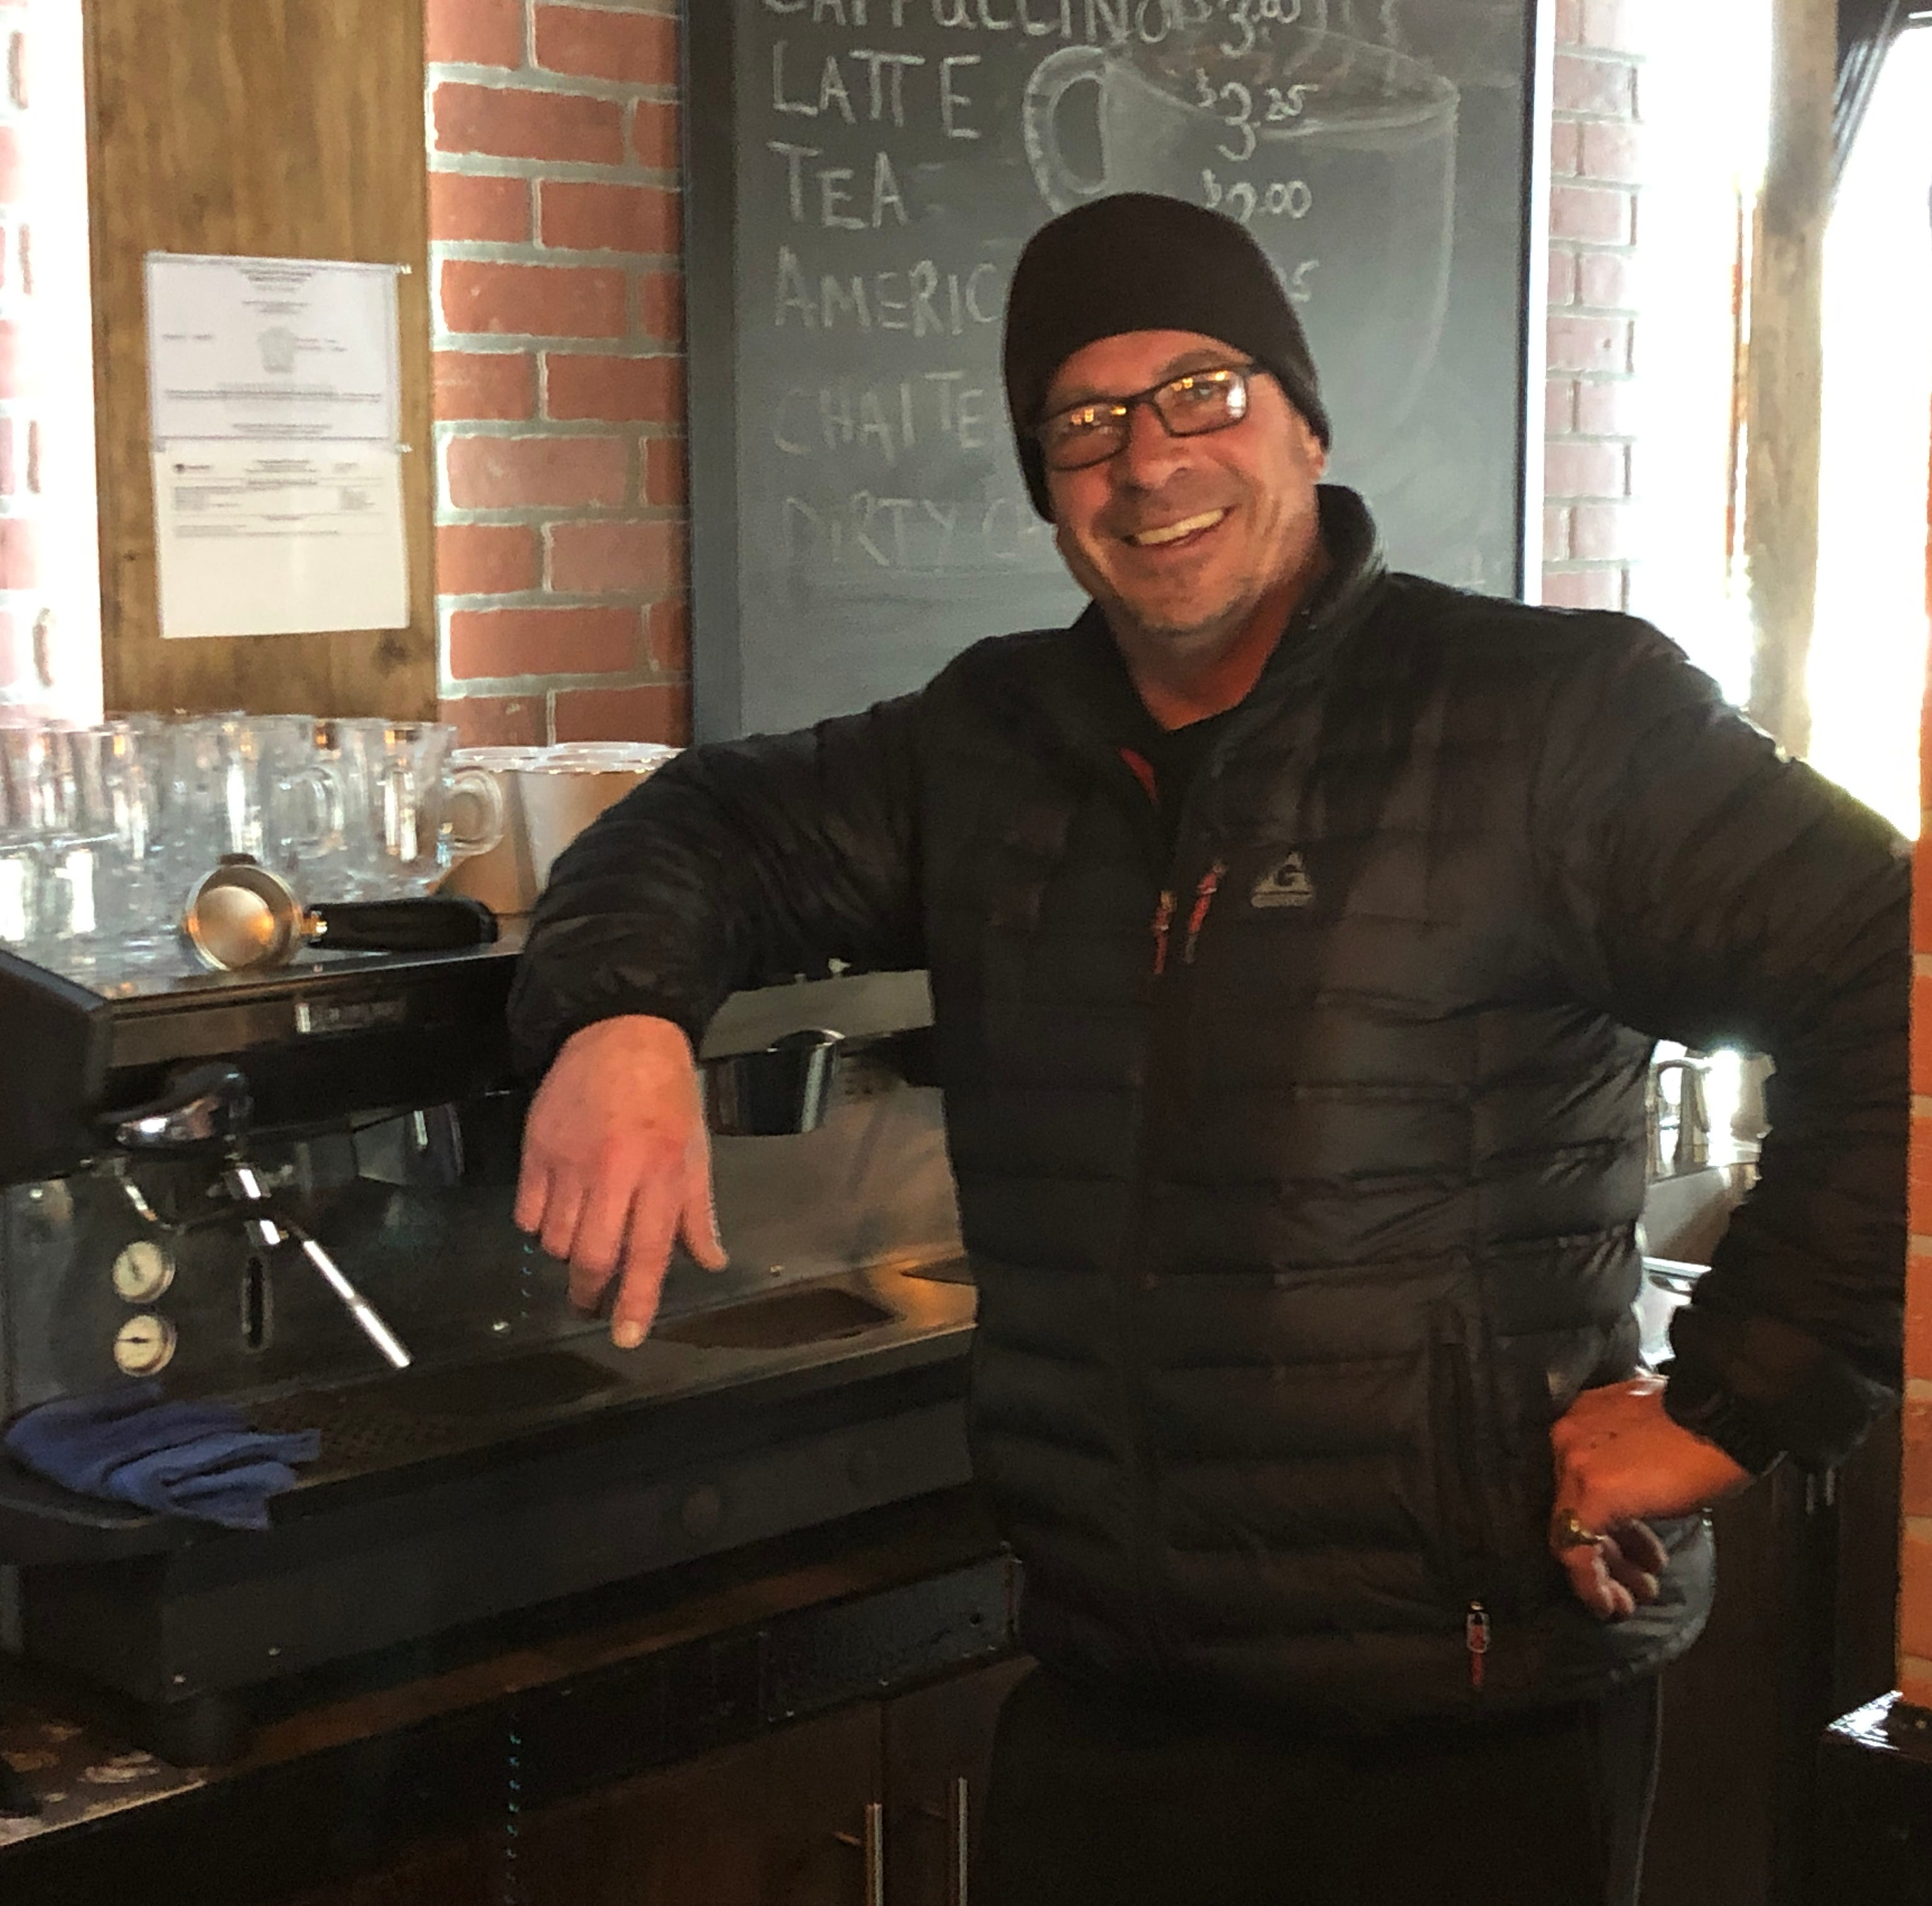 Civic-minded Myerstown resident opens coffee shop